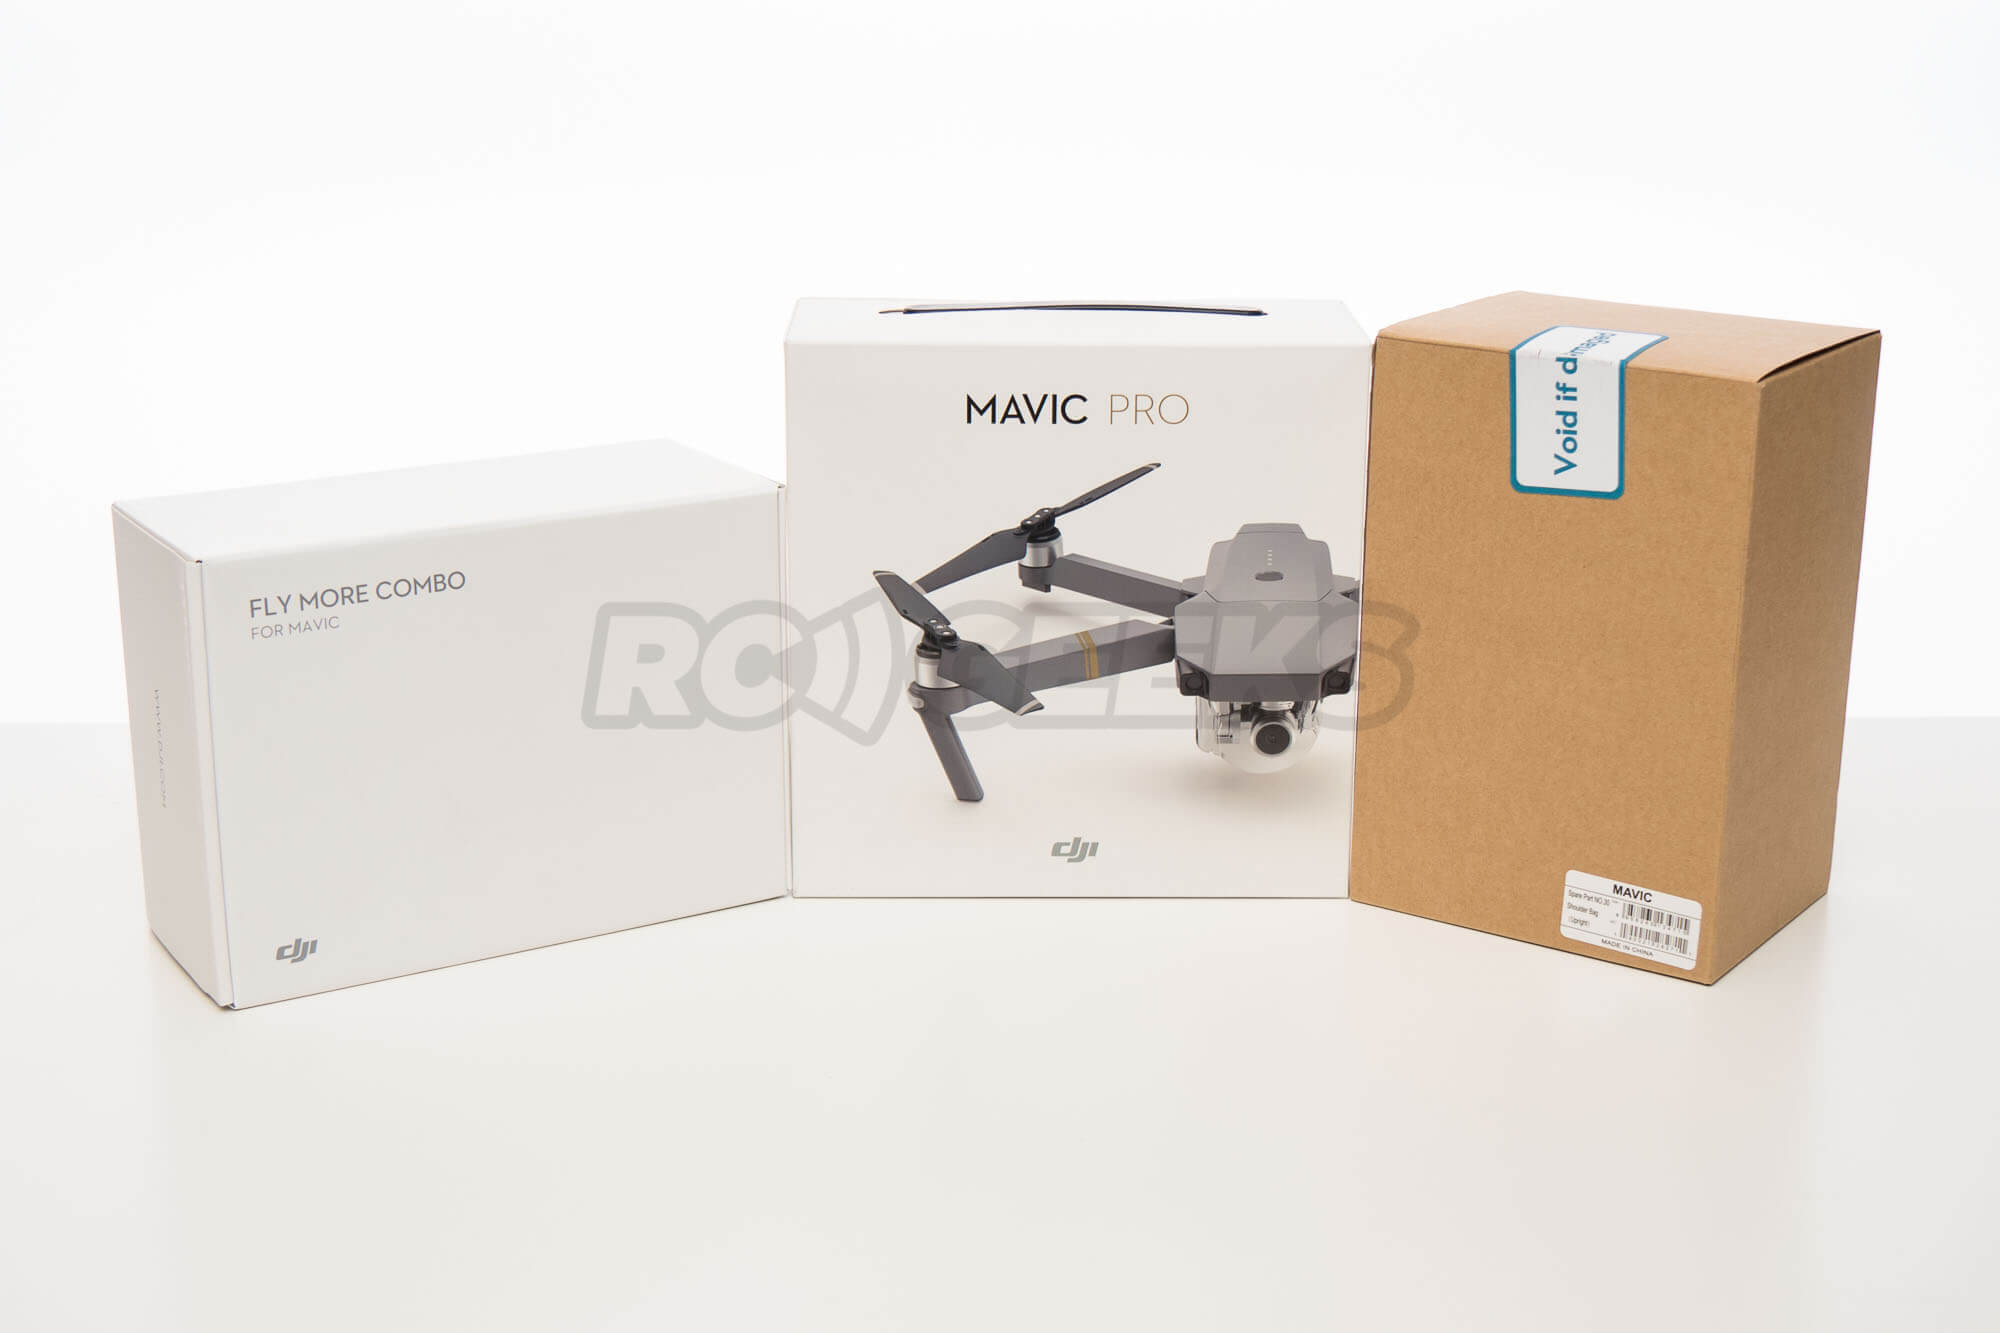 DJI-Mavic-fly-more-combo-package-contents